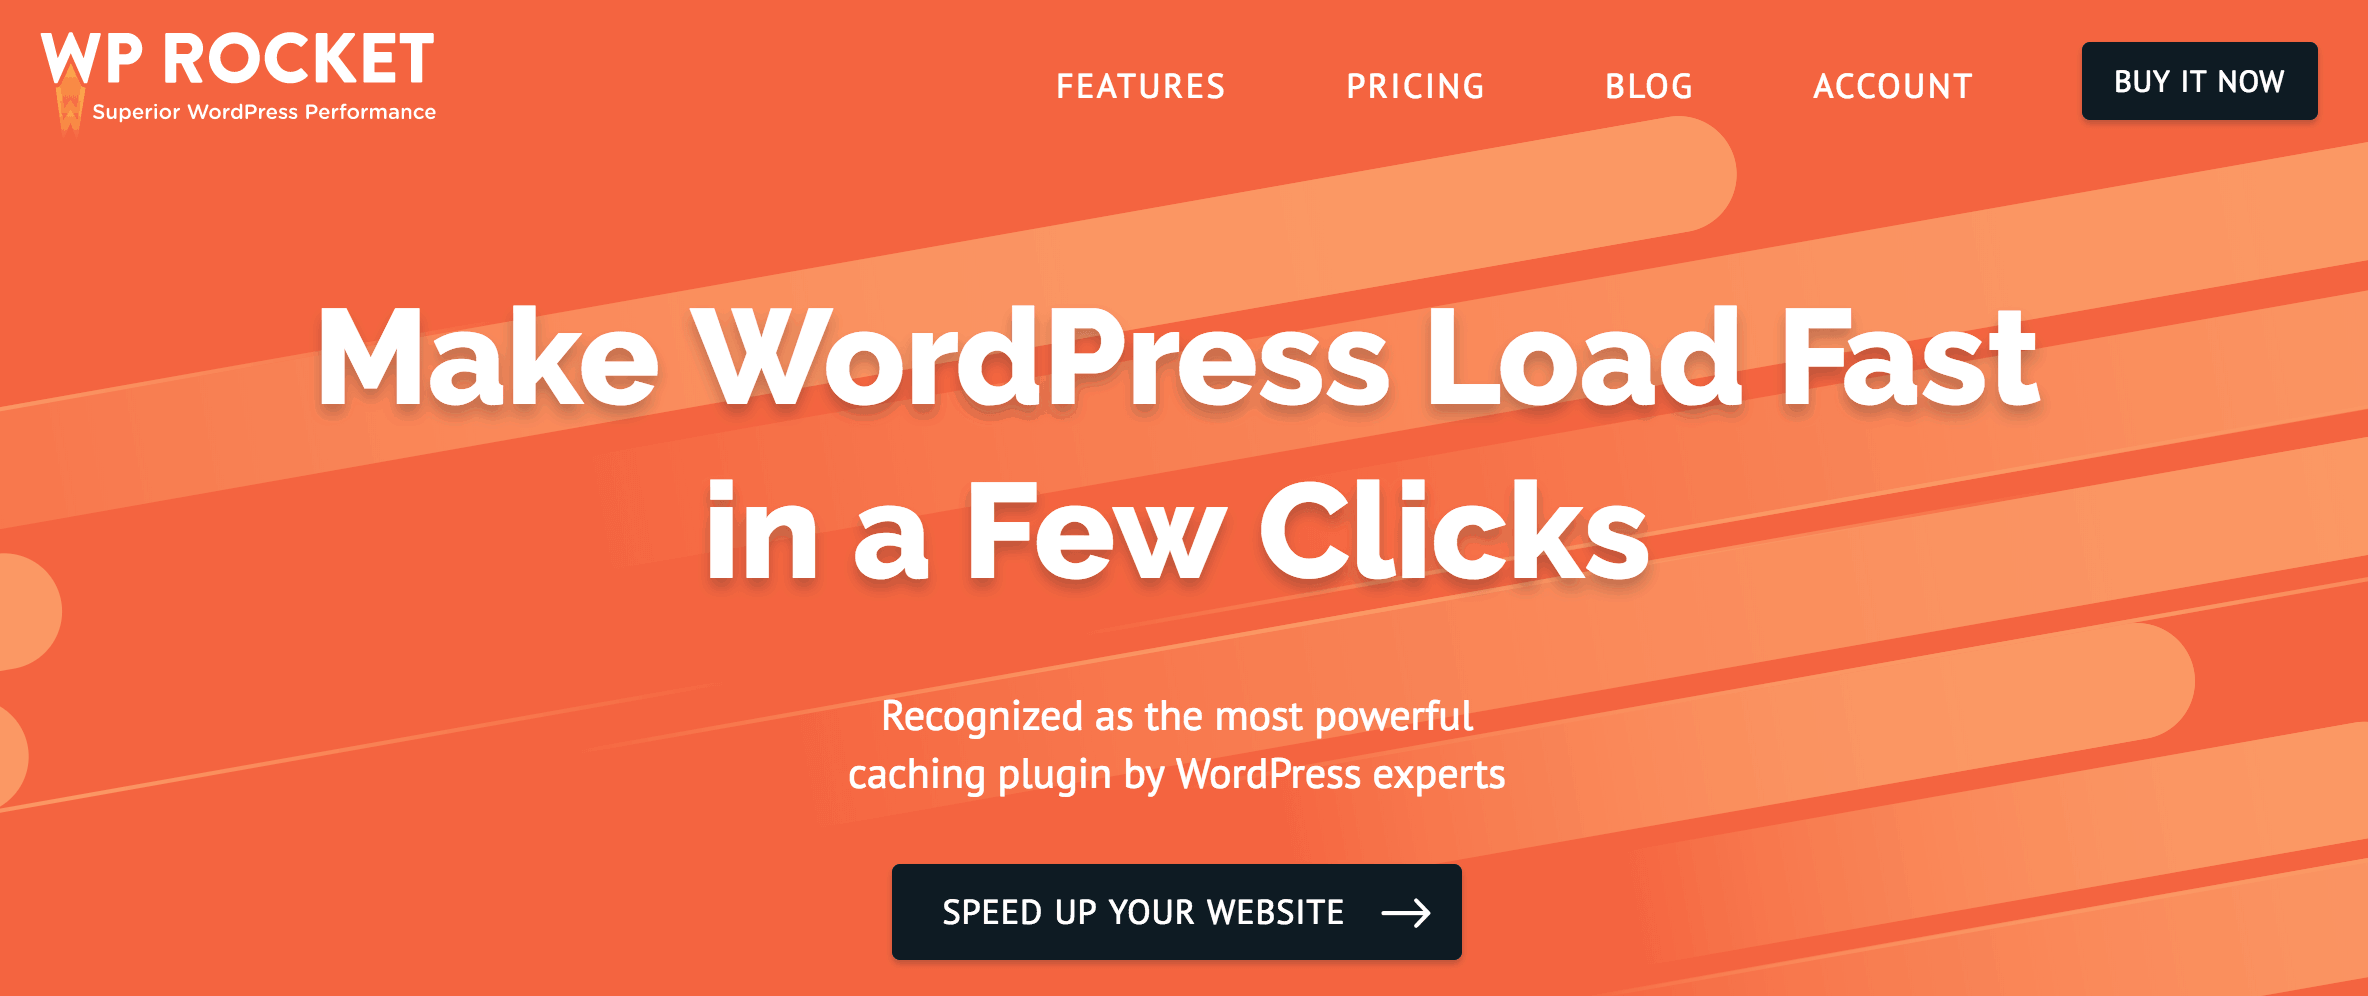 The WP Rocket plugin.